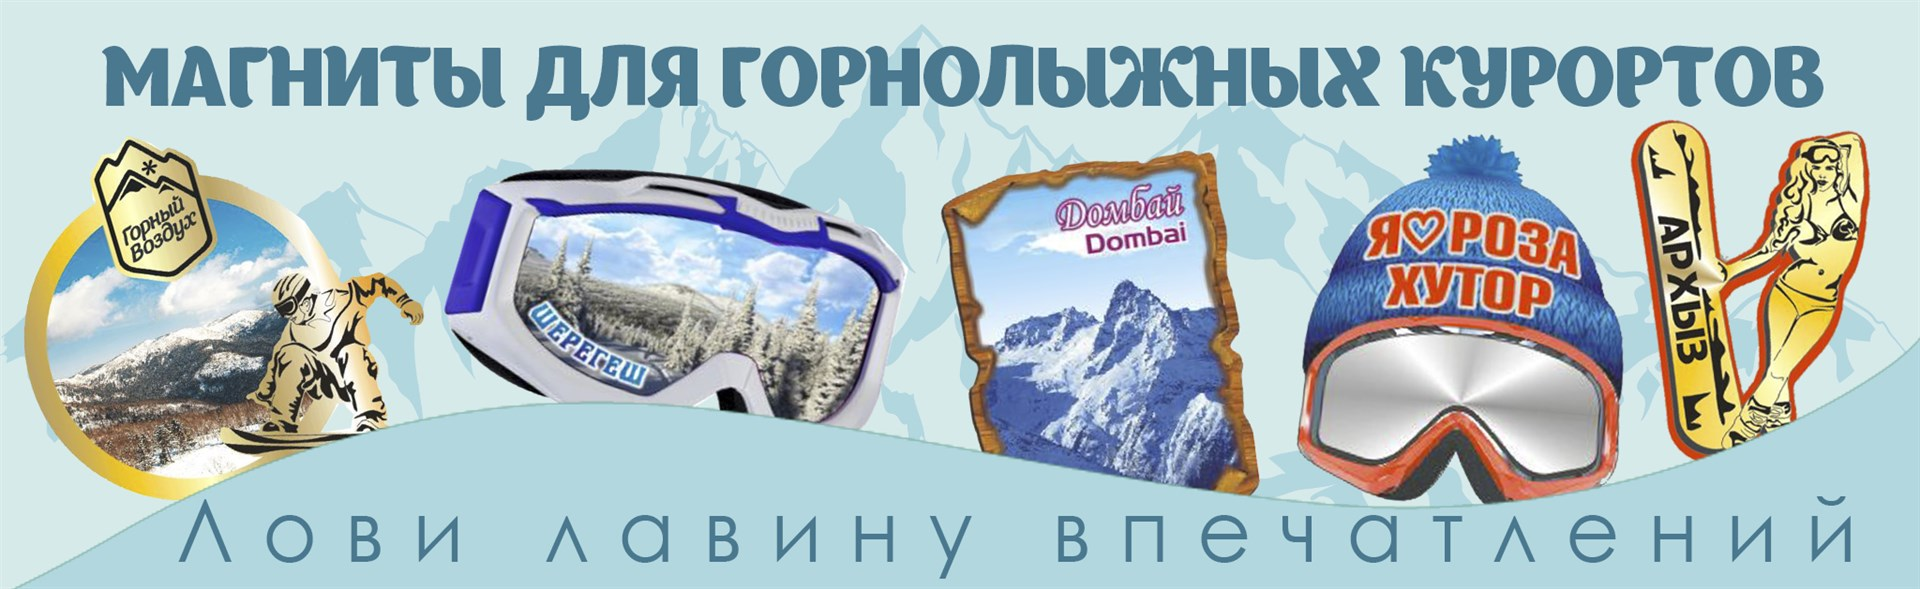 https://fabrikasuvenir.ru/categories/gornolyzhnye-kurorty-zimnie